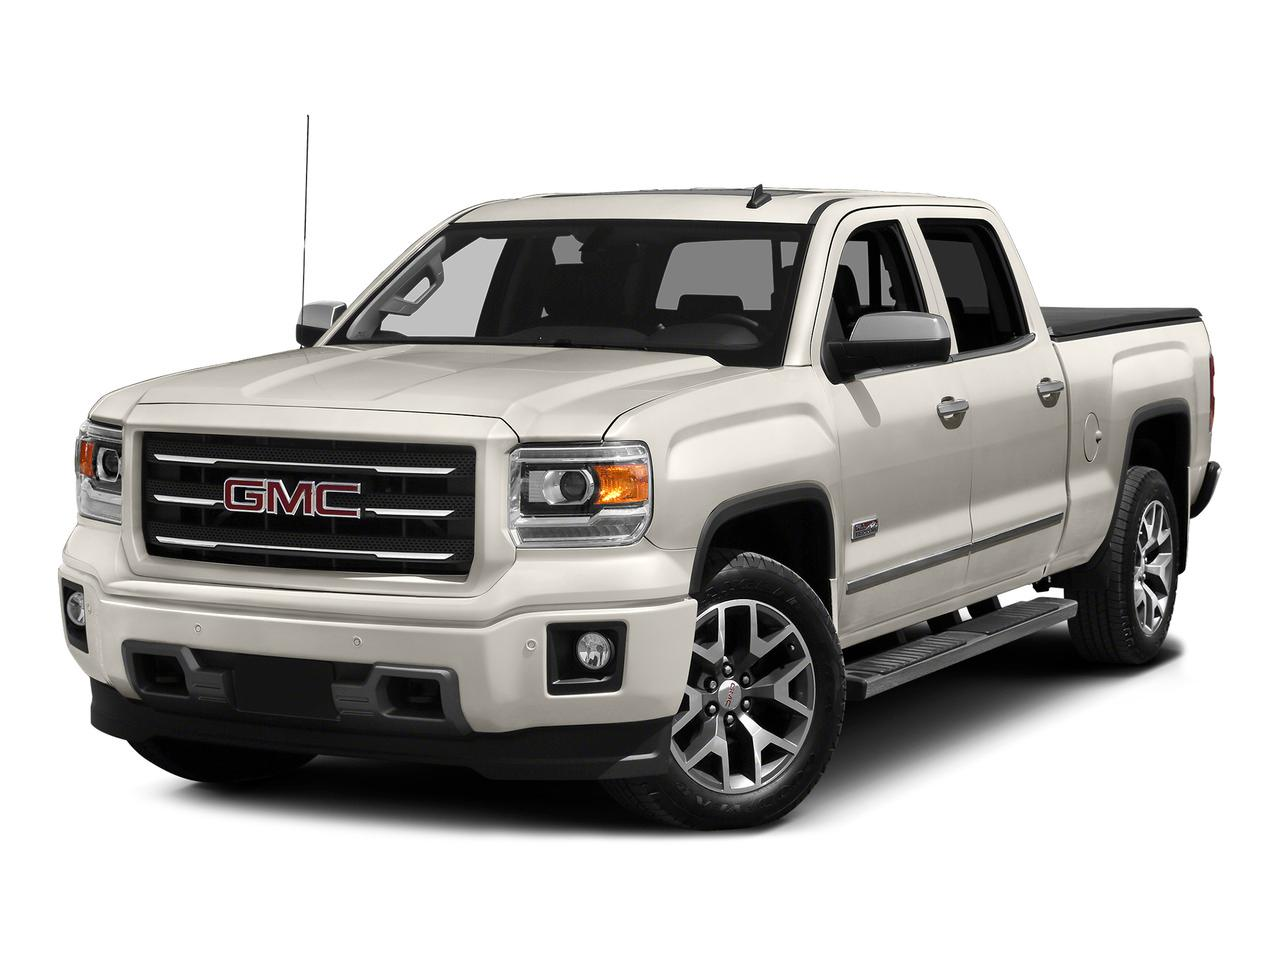 2015 GMC Sierra 1500 Vehicle Photo in Oklahoma City, OK 73114